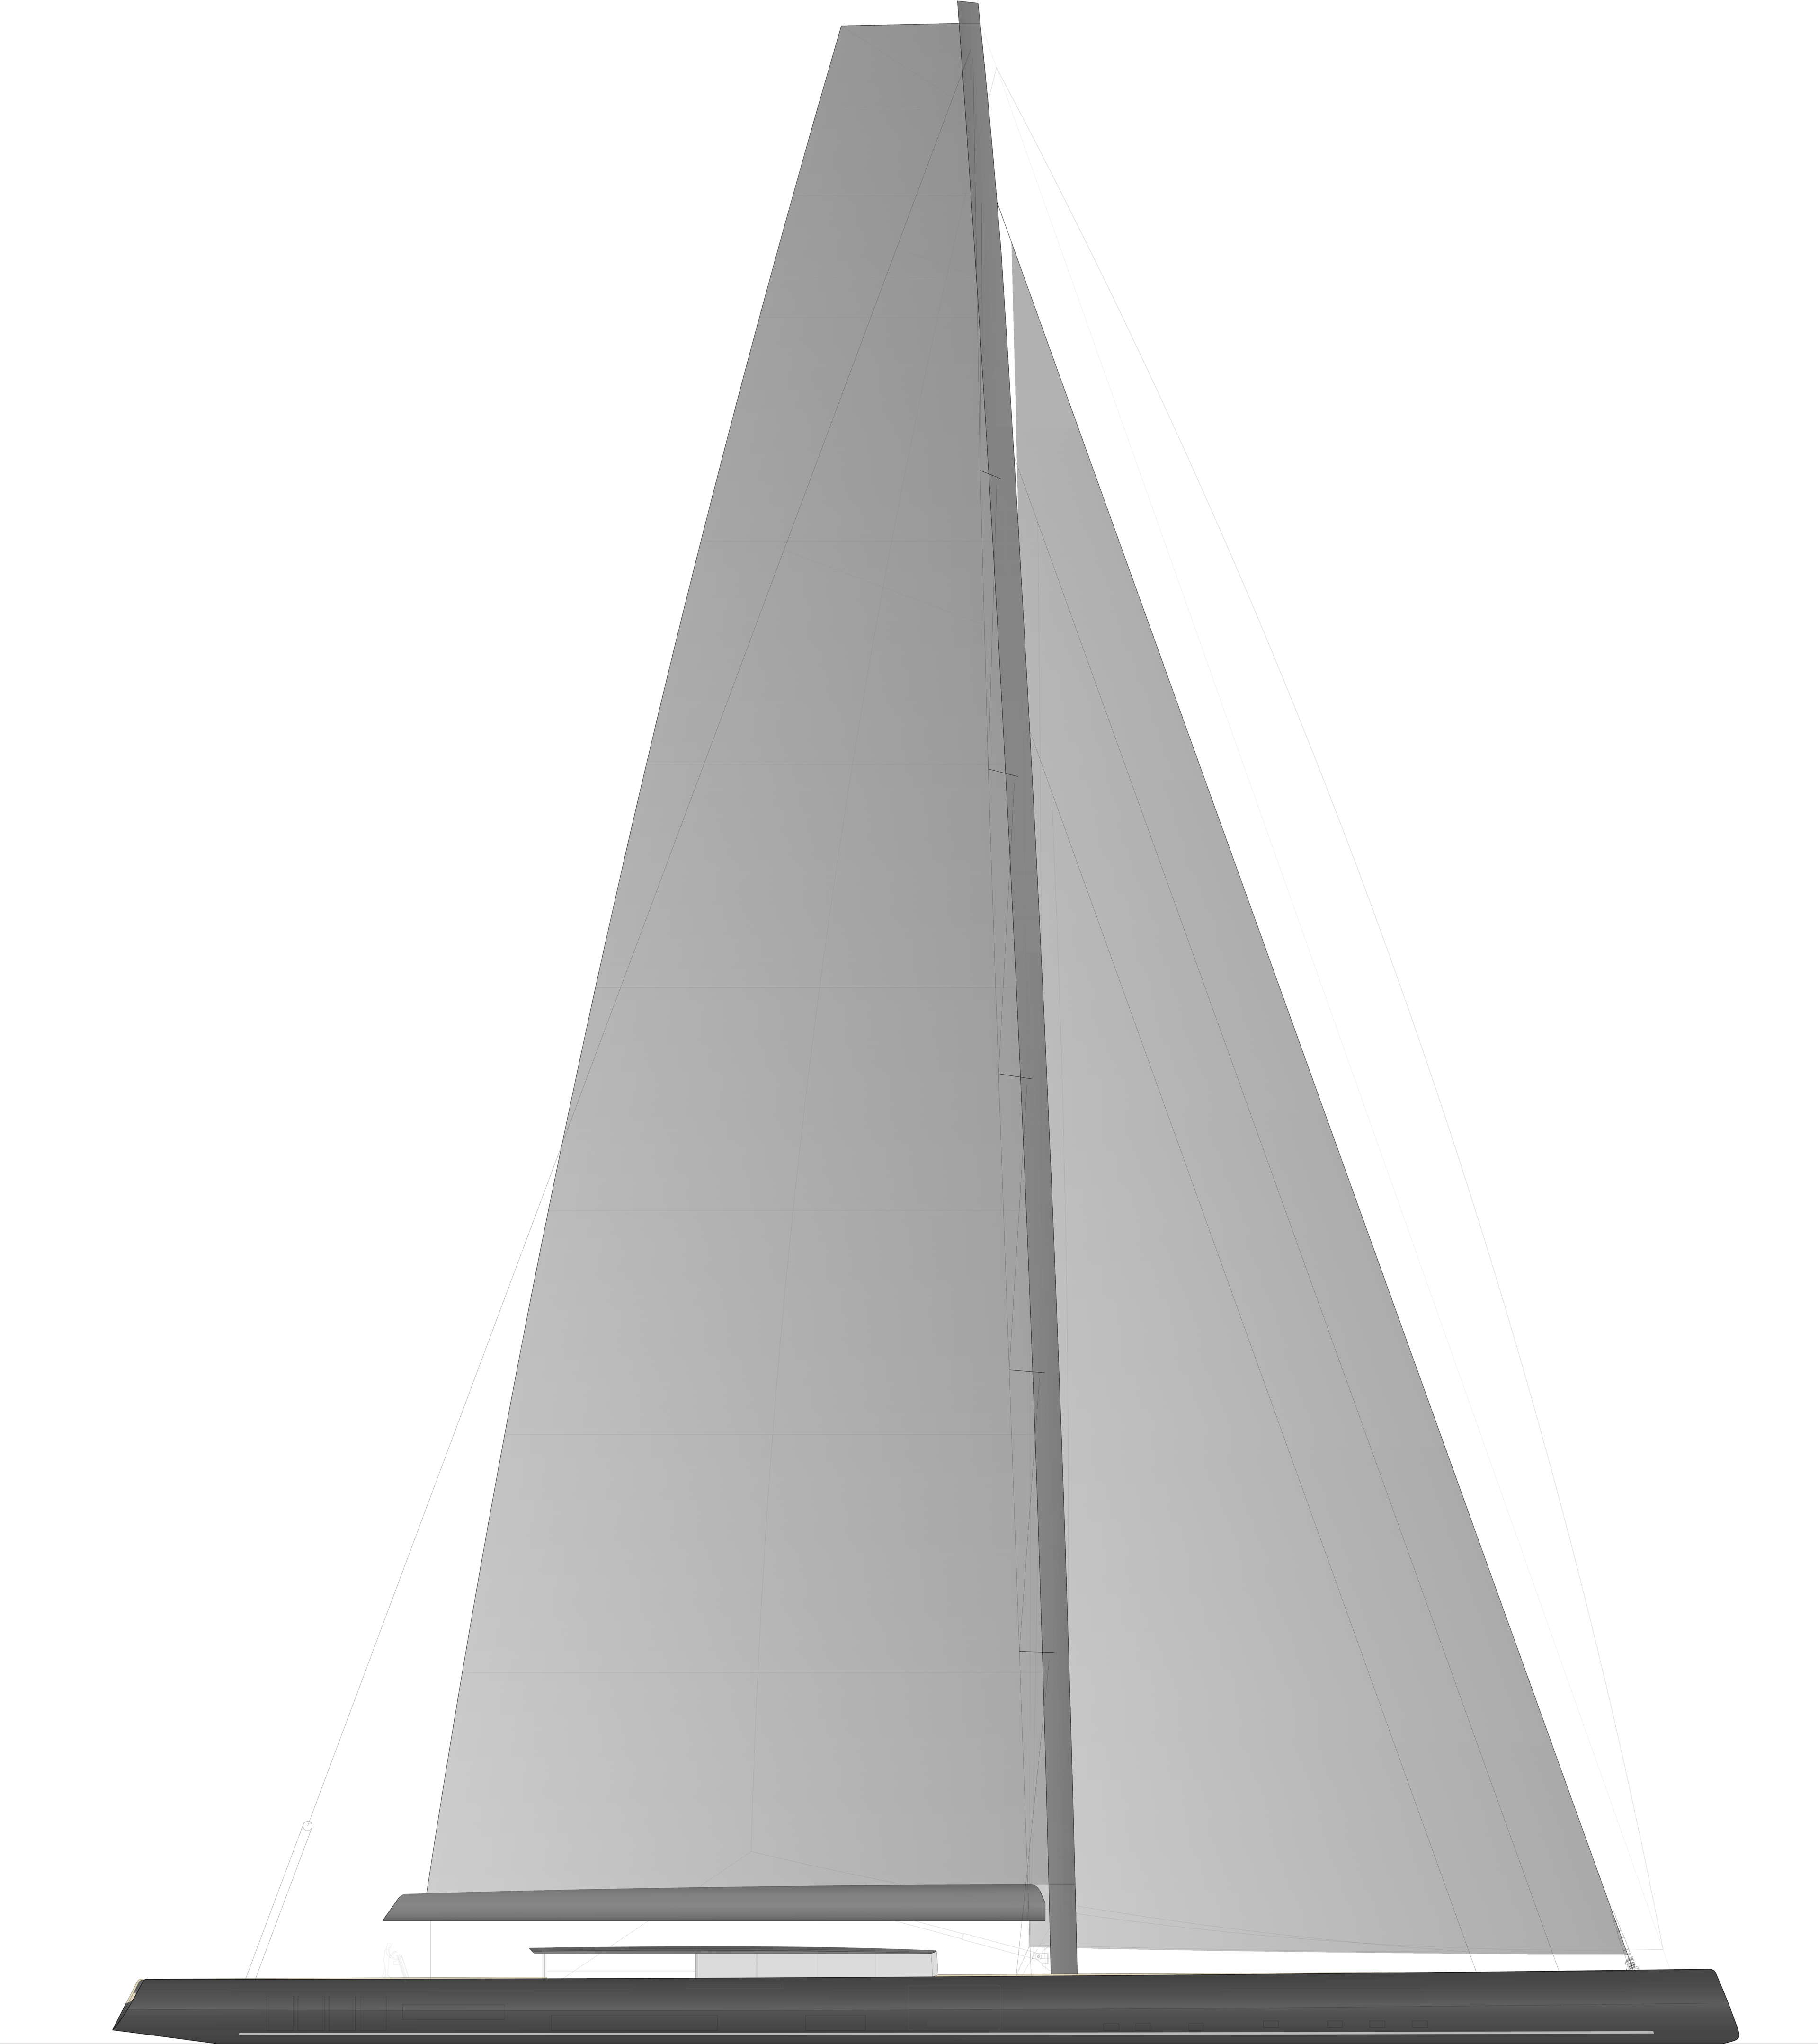 MMYD_043_85m_Publicity_Sail Plan.png